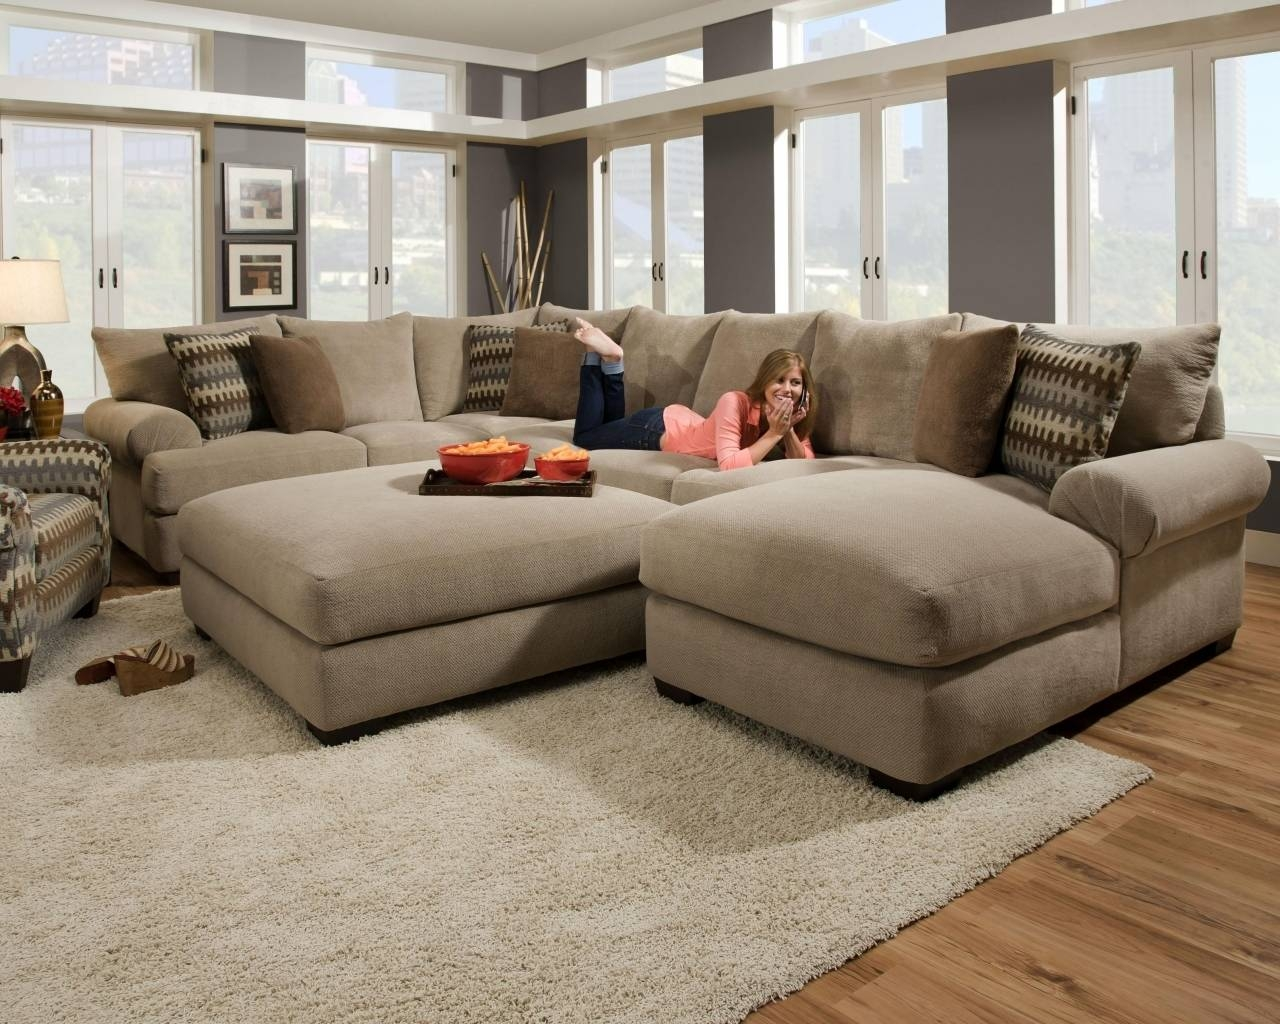 Fantastic Sectional Sofa With Oversized Ottoman   Sectional Sofas Within Sectional Sofa With Large Ottoman (Photo 2 of 30)